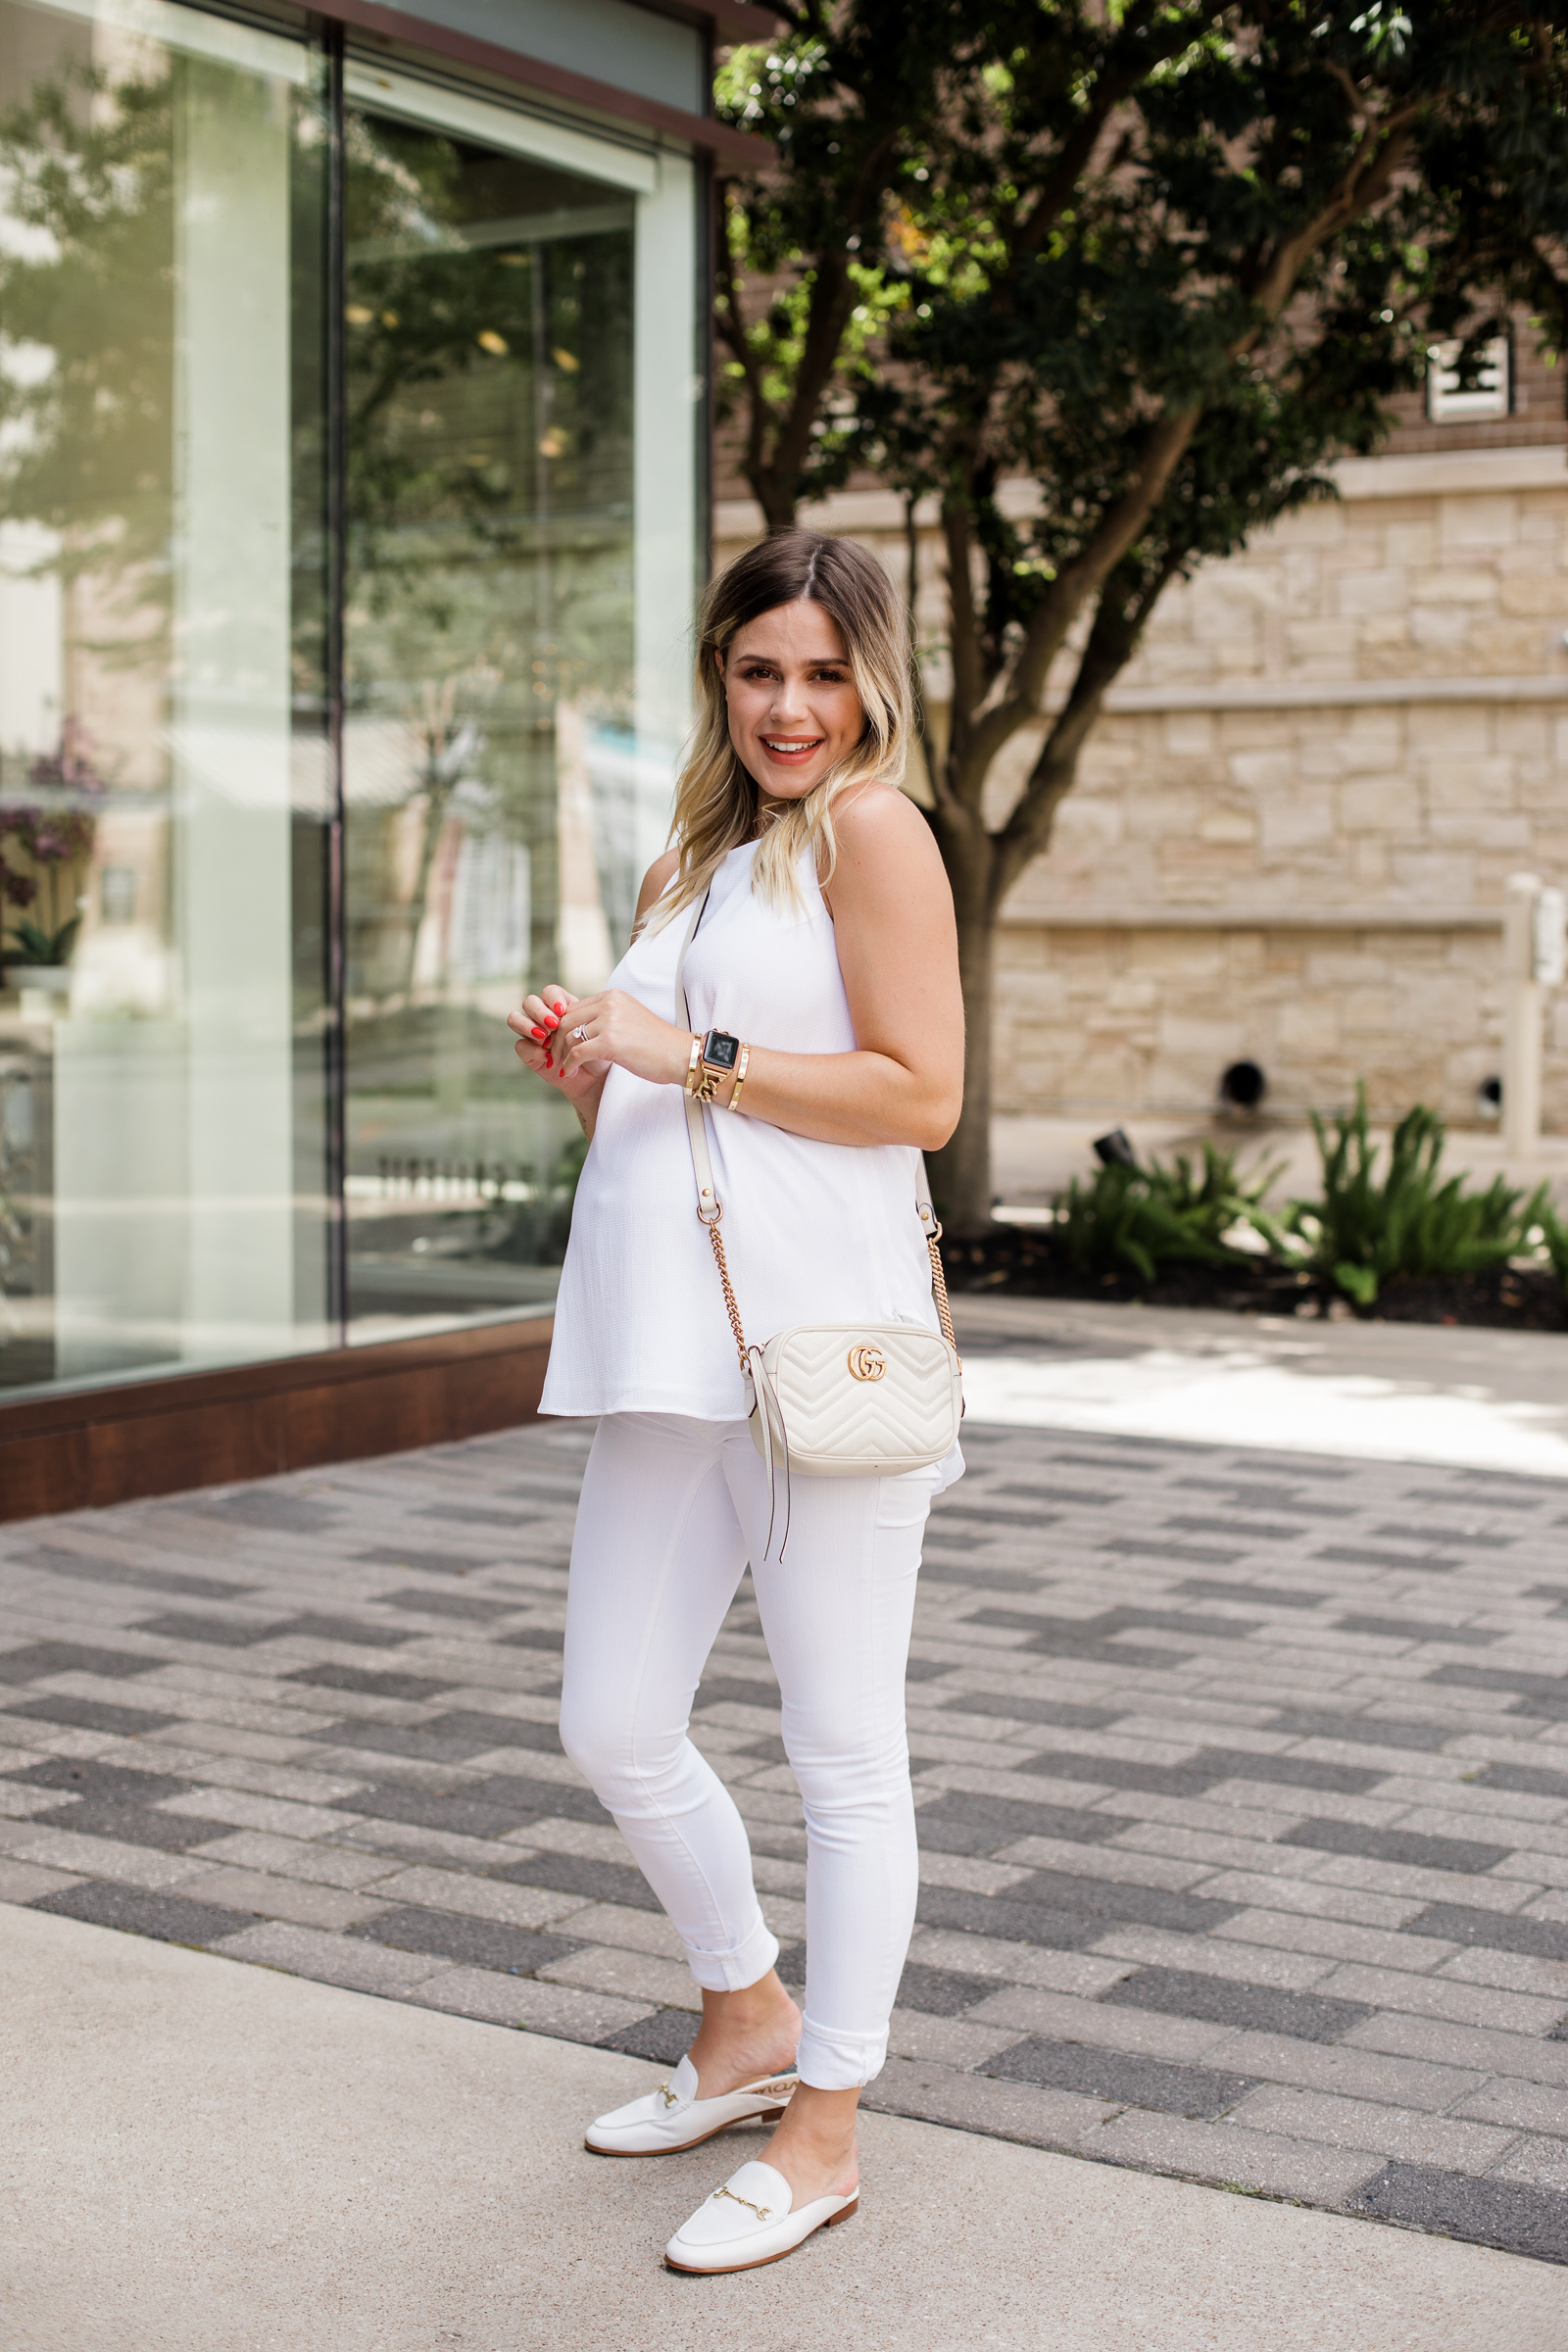 Houston fashion blogger Elly Brown wears a casual all white outfit with white Sam Edelman mules